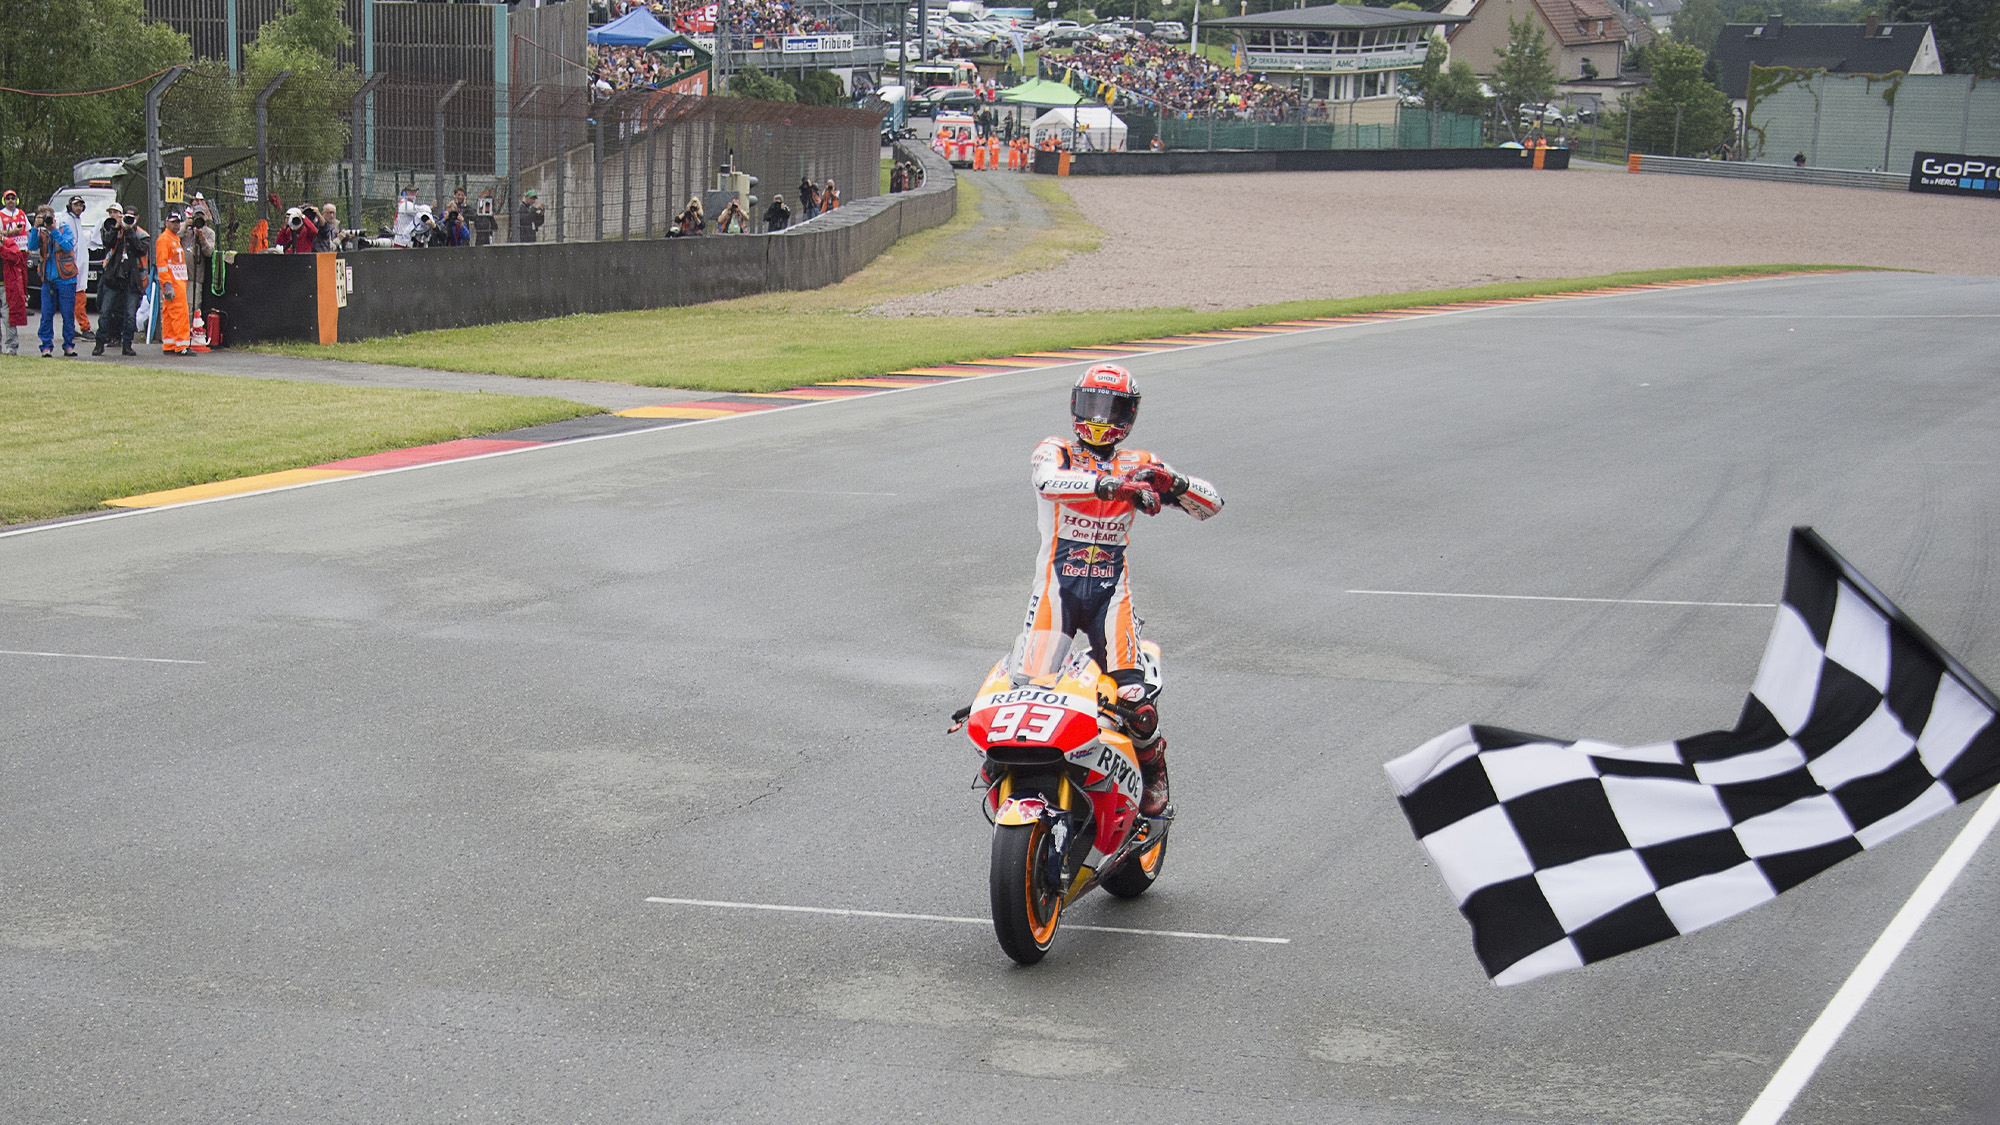 Marc Marquez celebrates victory in the 2016 MotoGP German Grand Prix at the Sachsenring